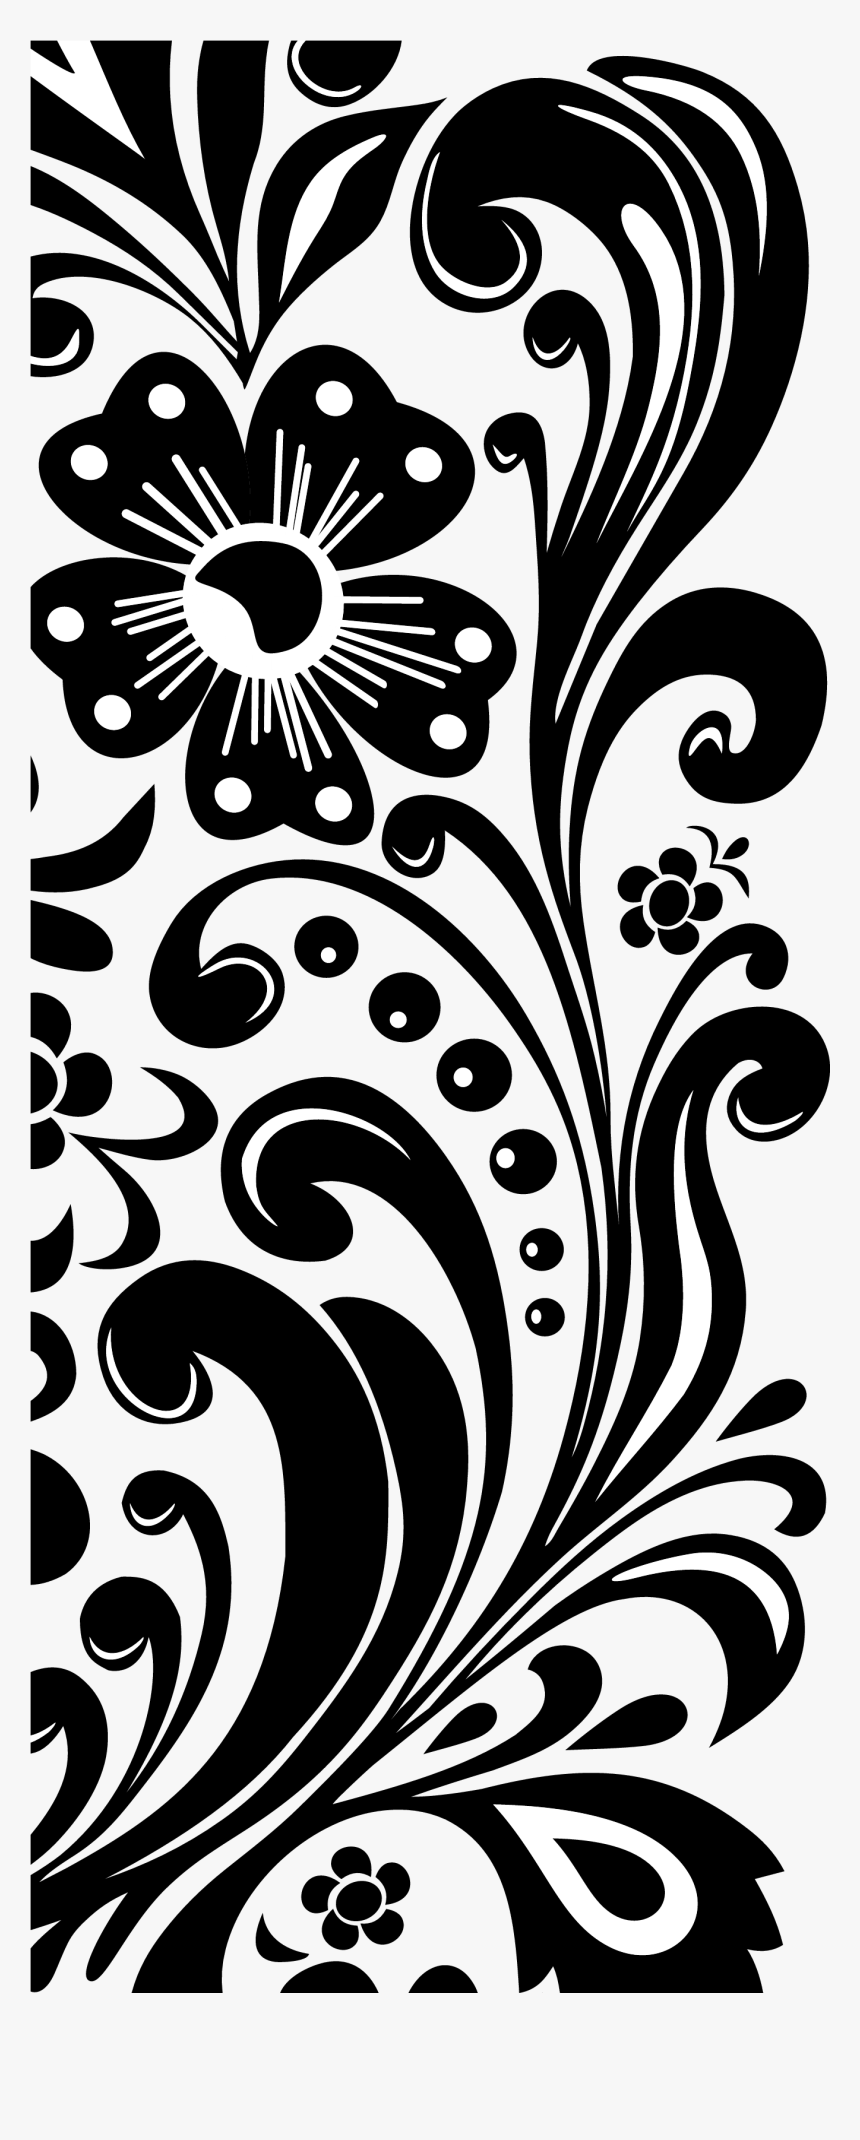 Transparent Lace Clip Art - Clipart Flower Border Black And White, HD Png Download, Free Download